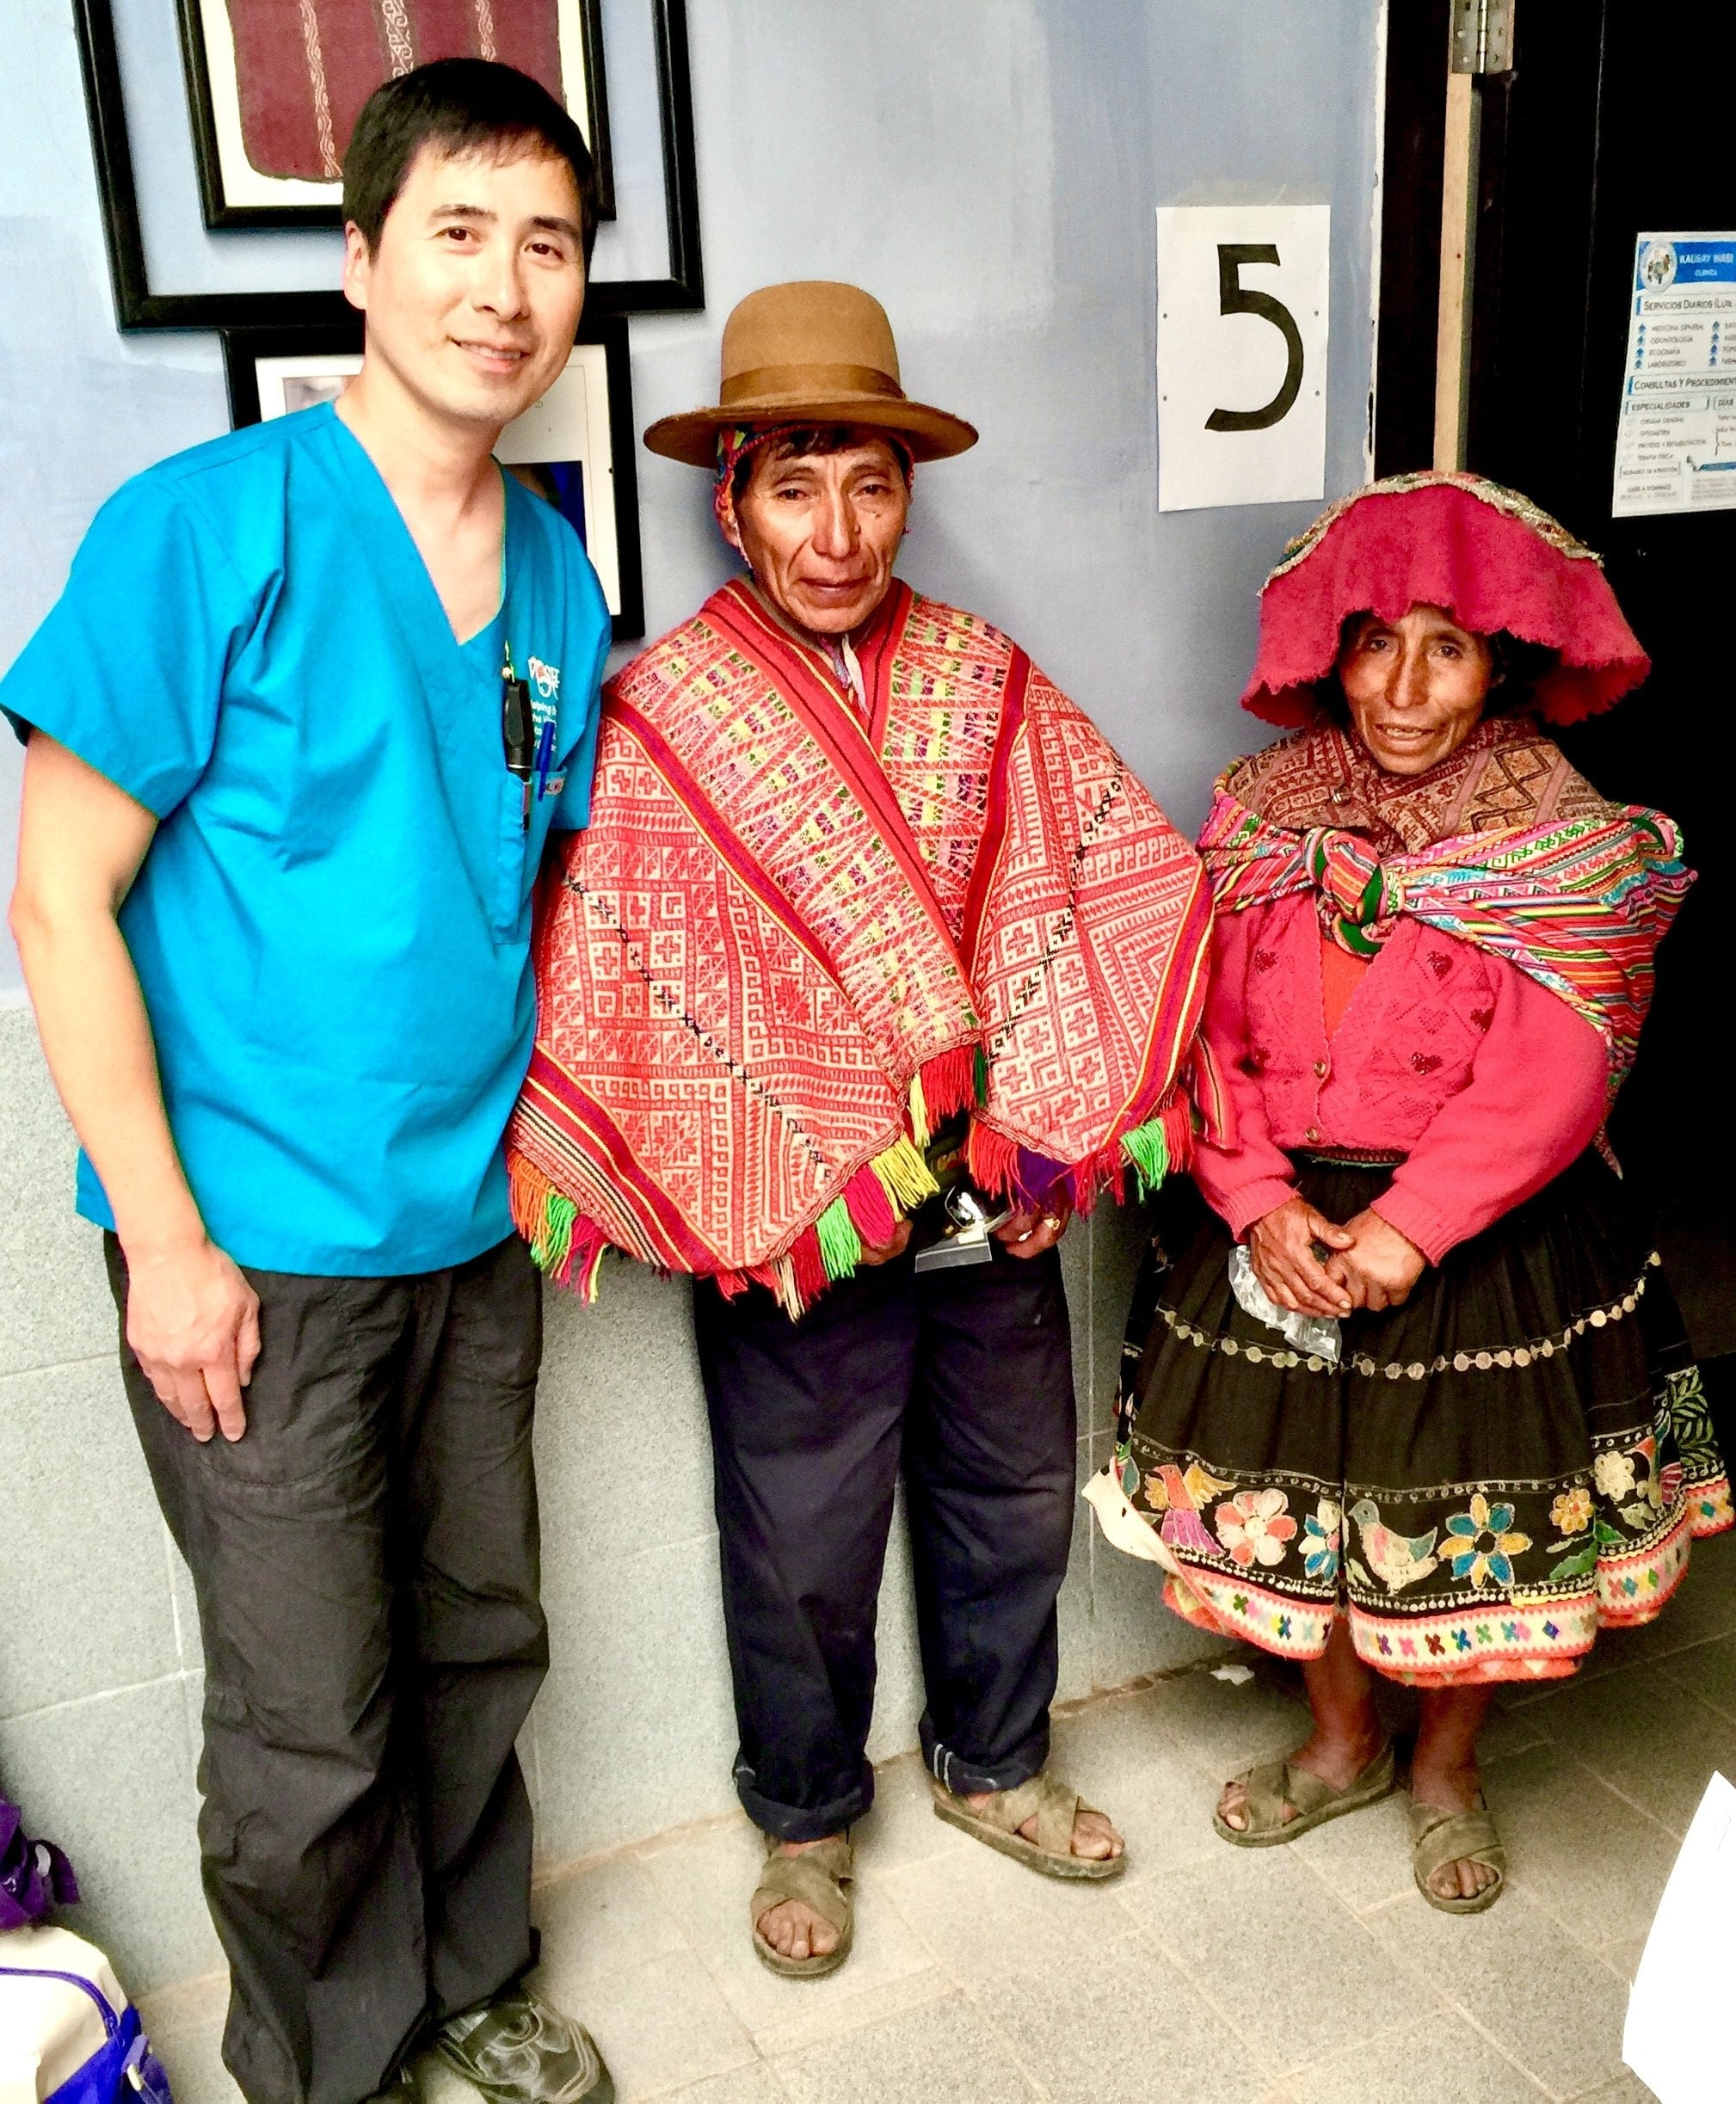 Dr. Maxwell Cheng greets a couple in Peru, who received their first pair of glasses and sunglasses from him.